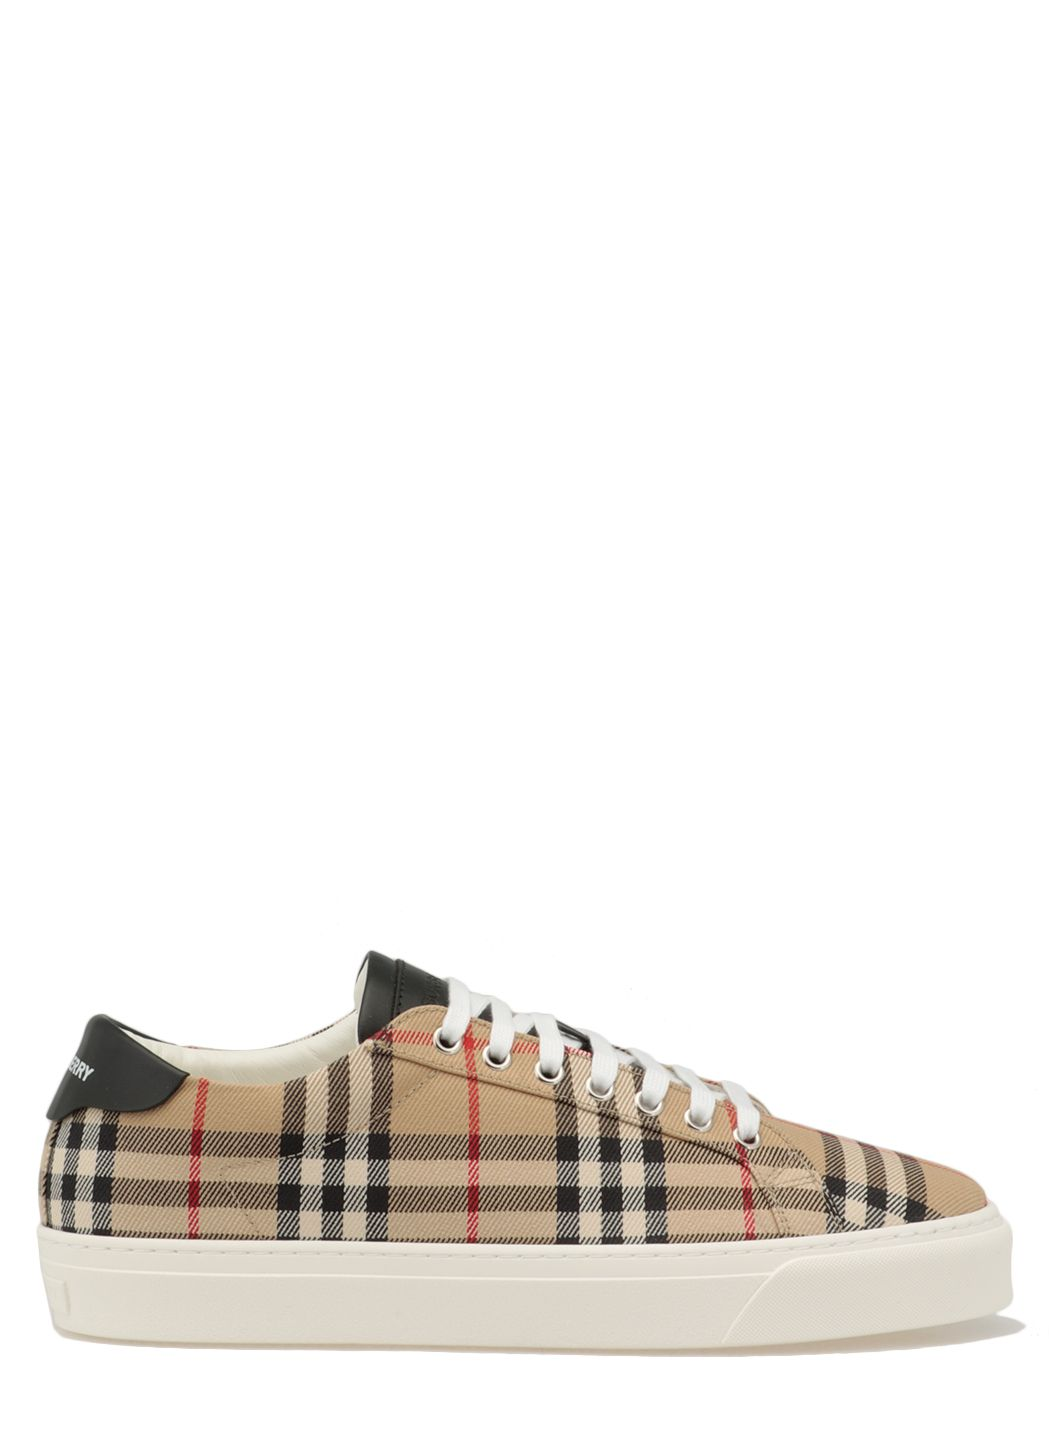 Sneaker with vintage check pattern